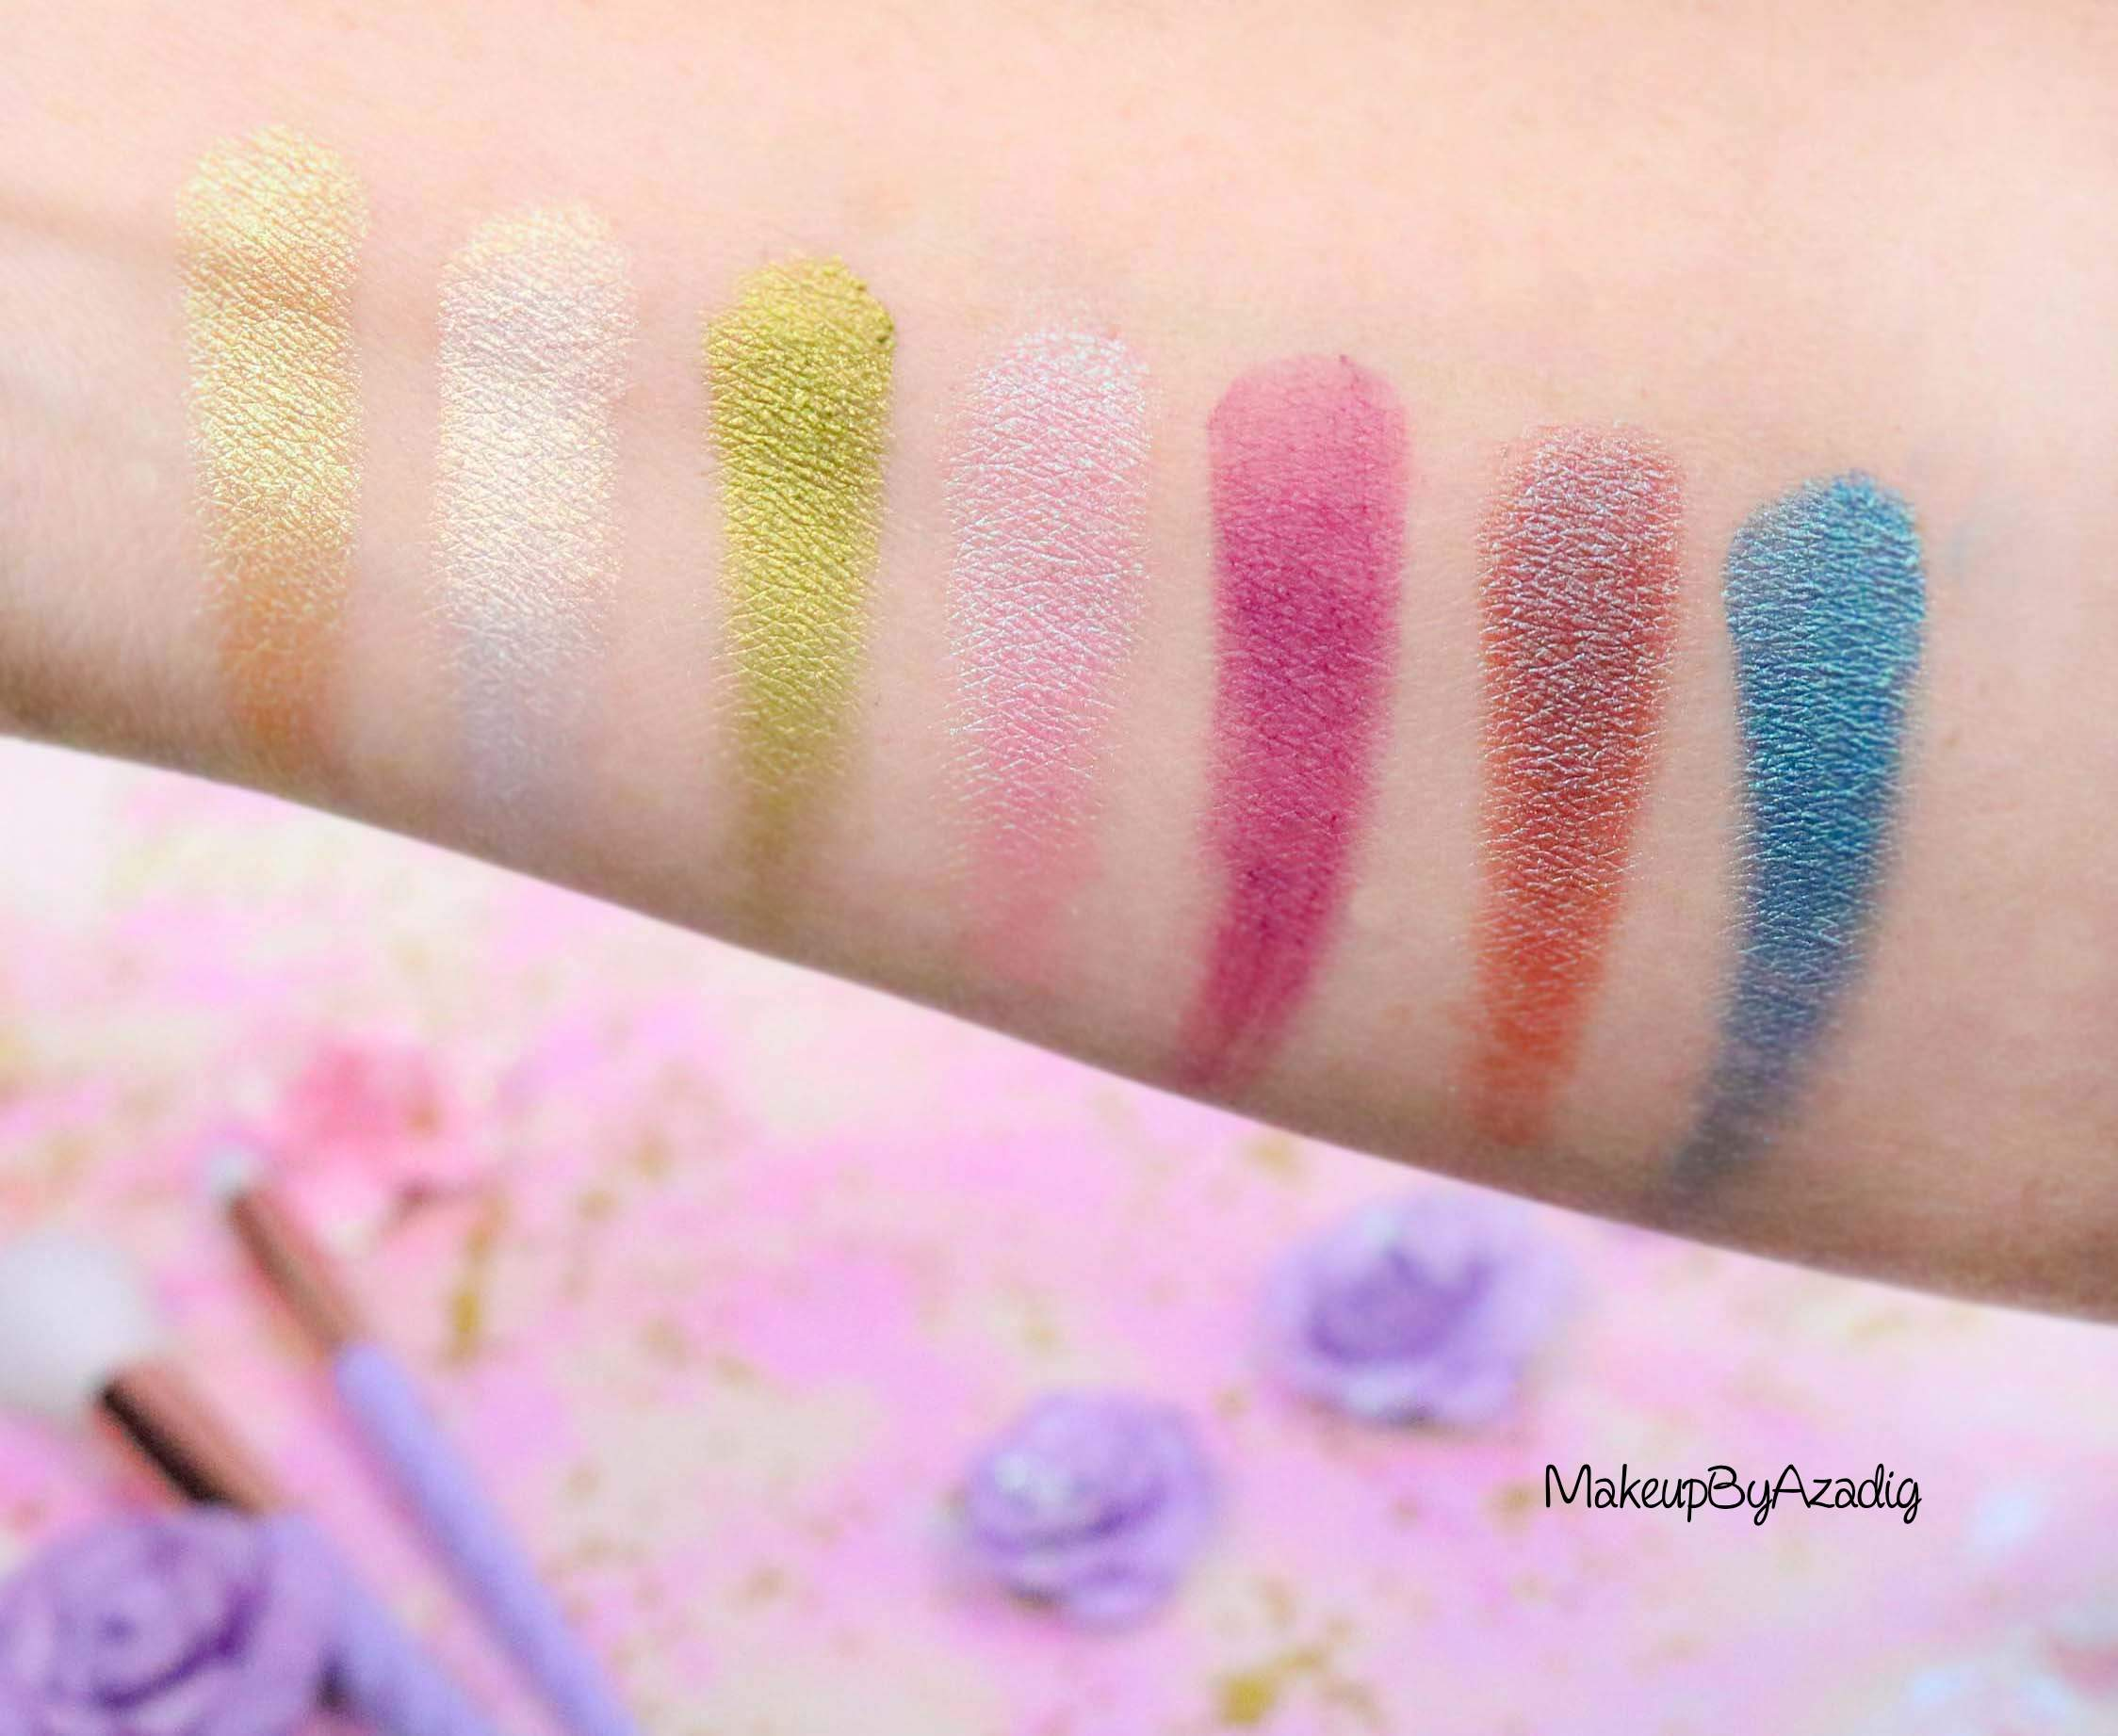 revue-palette-lifes-a-festival-too-faced-france-sephora-avis-prix-revue-makeupbyazadig-collection-licorne-coachella